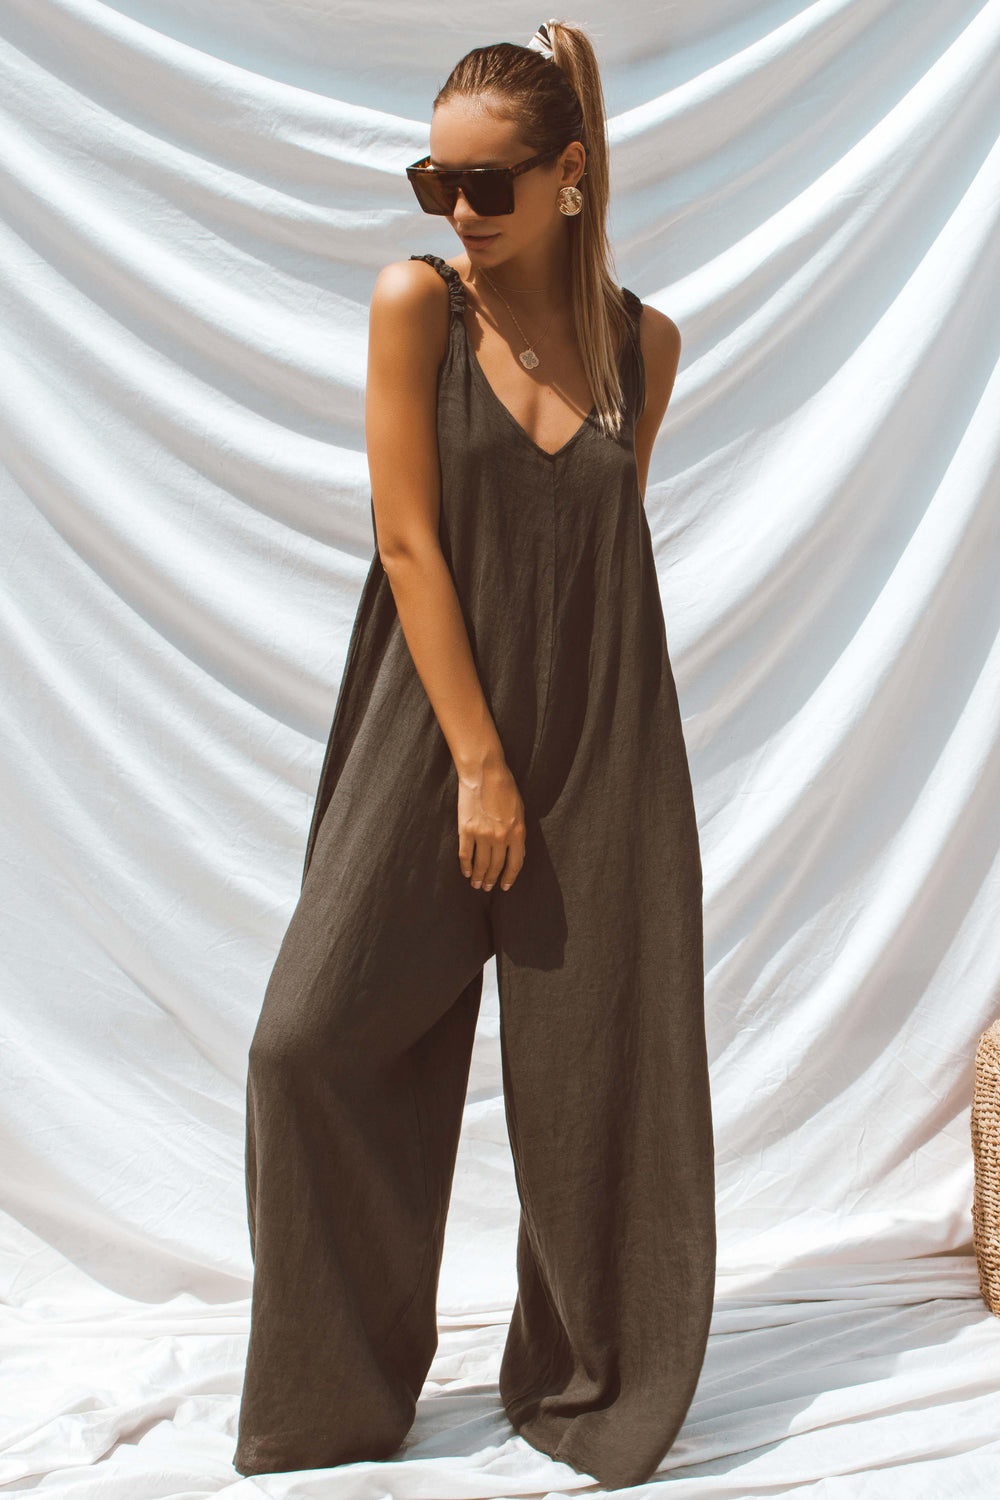 APOLLO JUMPSUIT IN BLACK | Women's Online Shopping | CHICLEFRIQUE